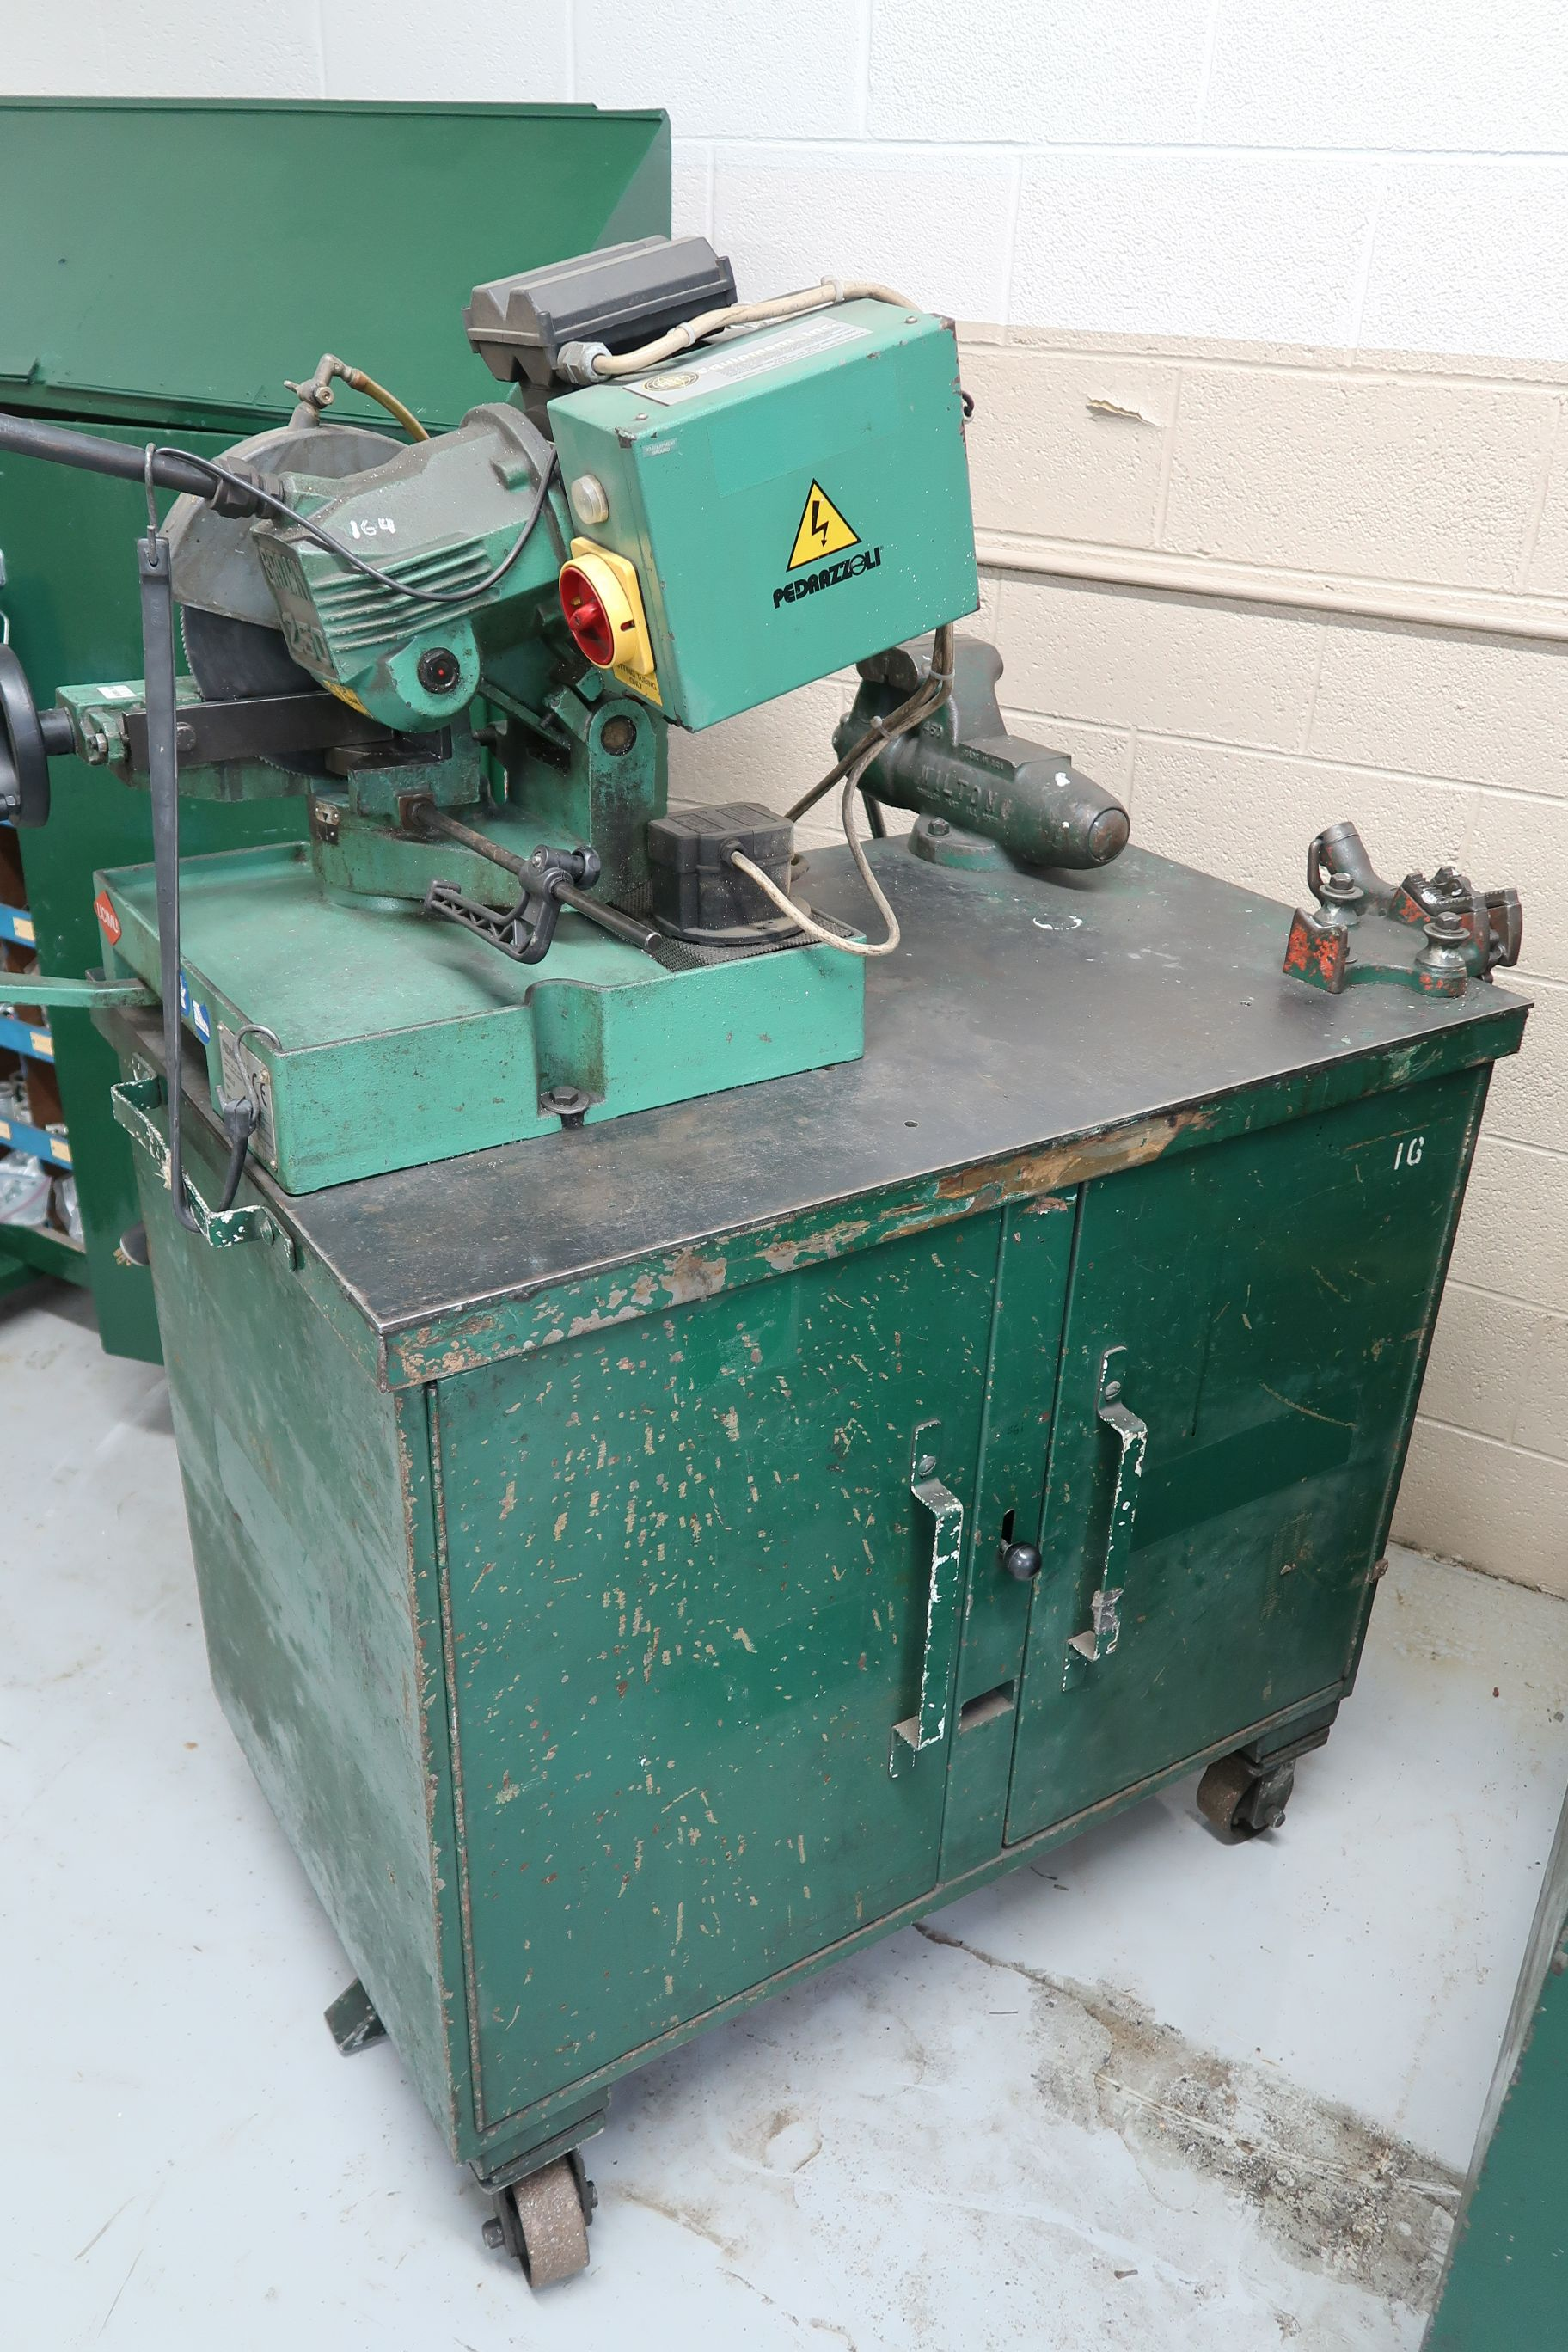 BROWN MODEL 250 TABLE MOUNTED SAW; S/N 029113, MOUNTED ON PORTABLE JOBBOX WITH 4-1/2 BENCH VISE - Image 6 of 6